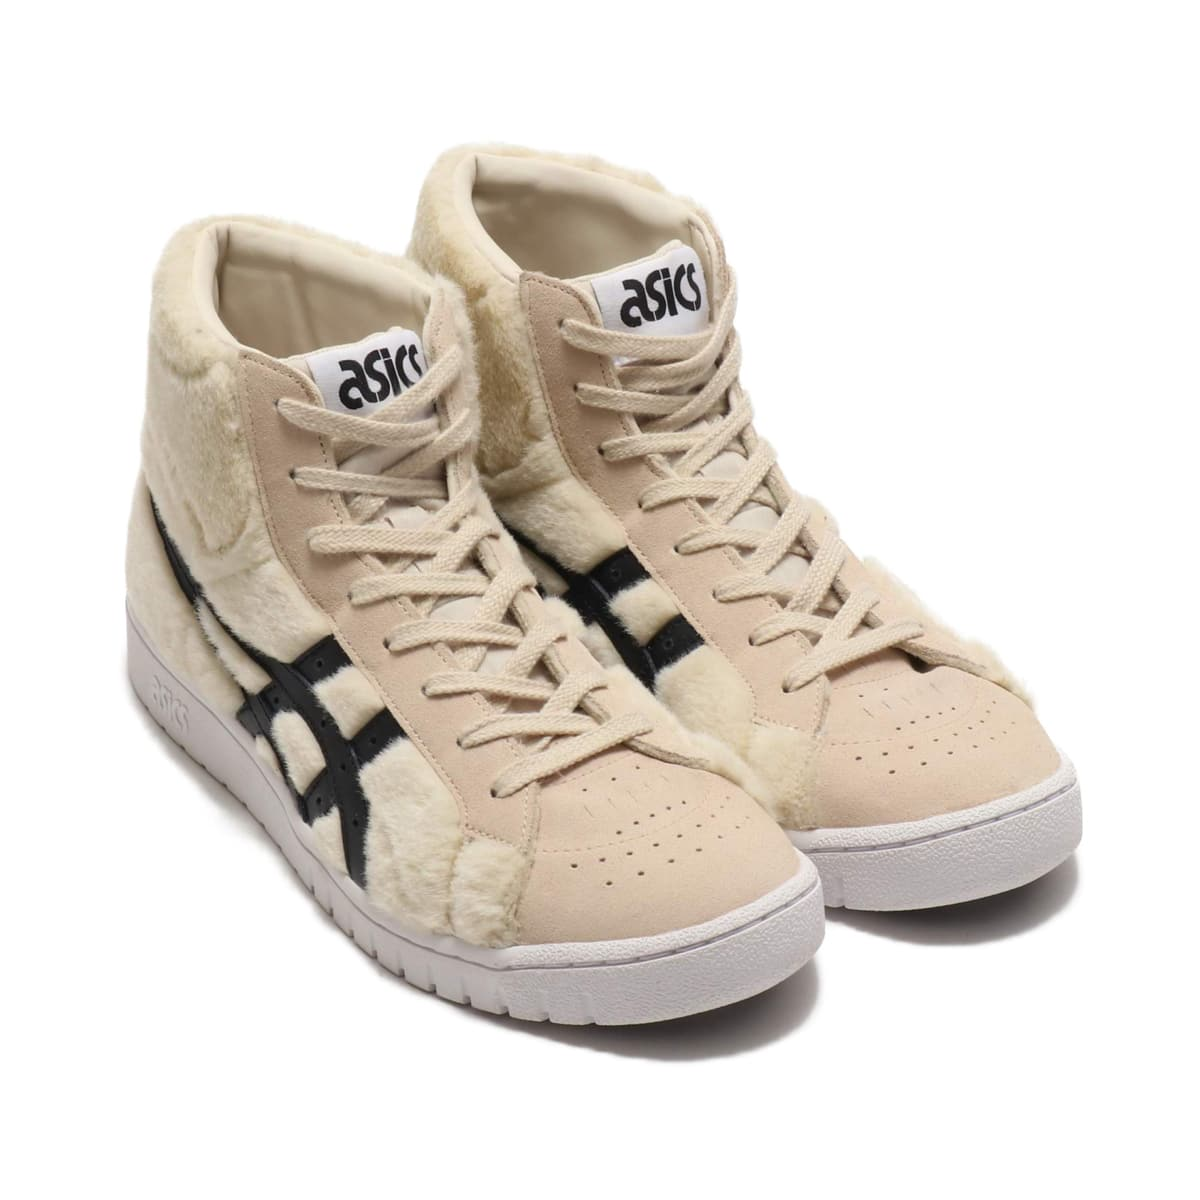 ASICSTIGER GEL-PTG MT BEIGE FUR BEIGE 19AW-S_photo_large